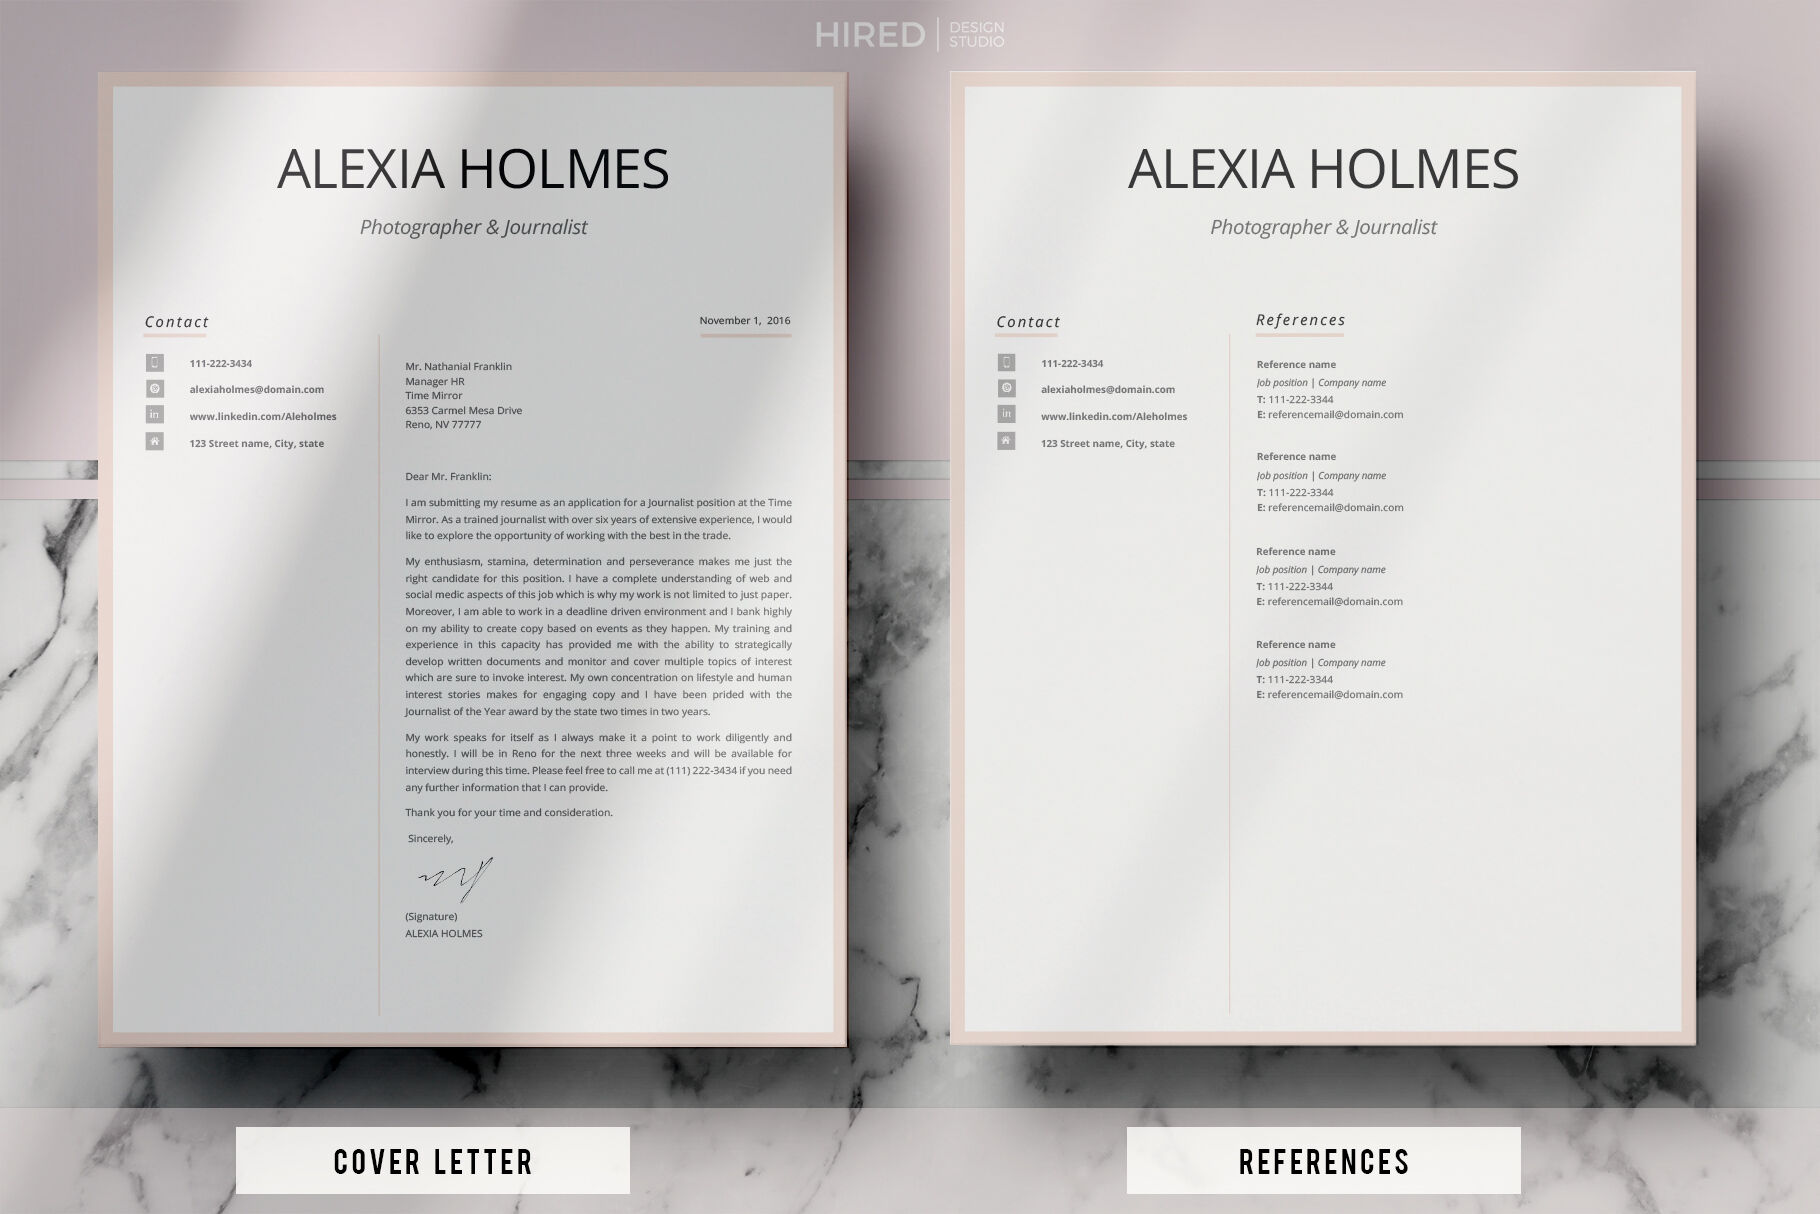 Modern Resume Design Cover Letter Example References Tips By Hiredds Thehungryjpeg Com